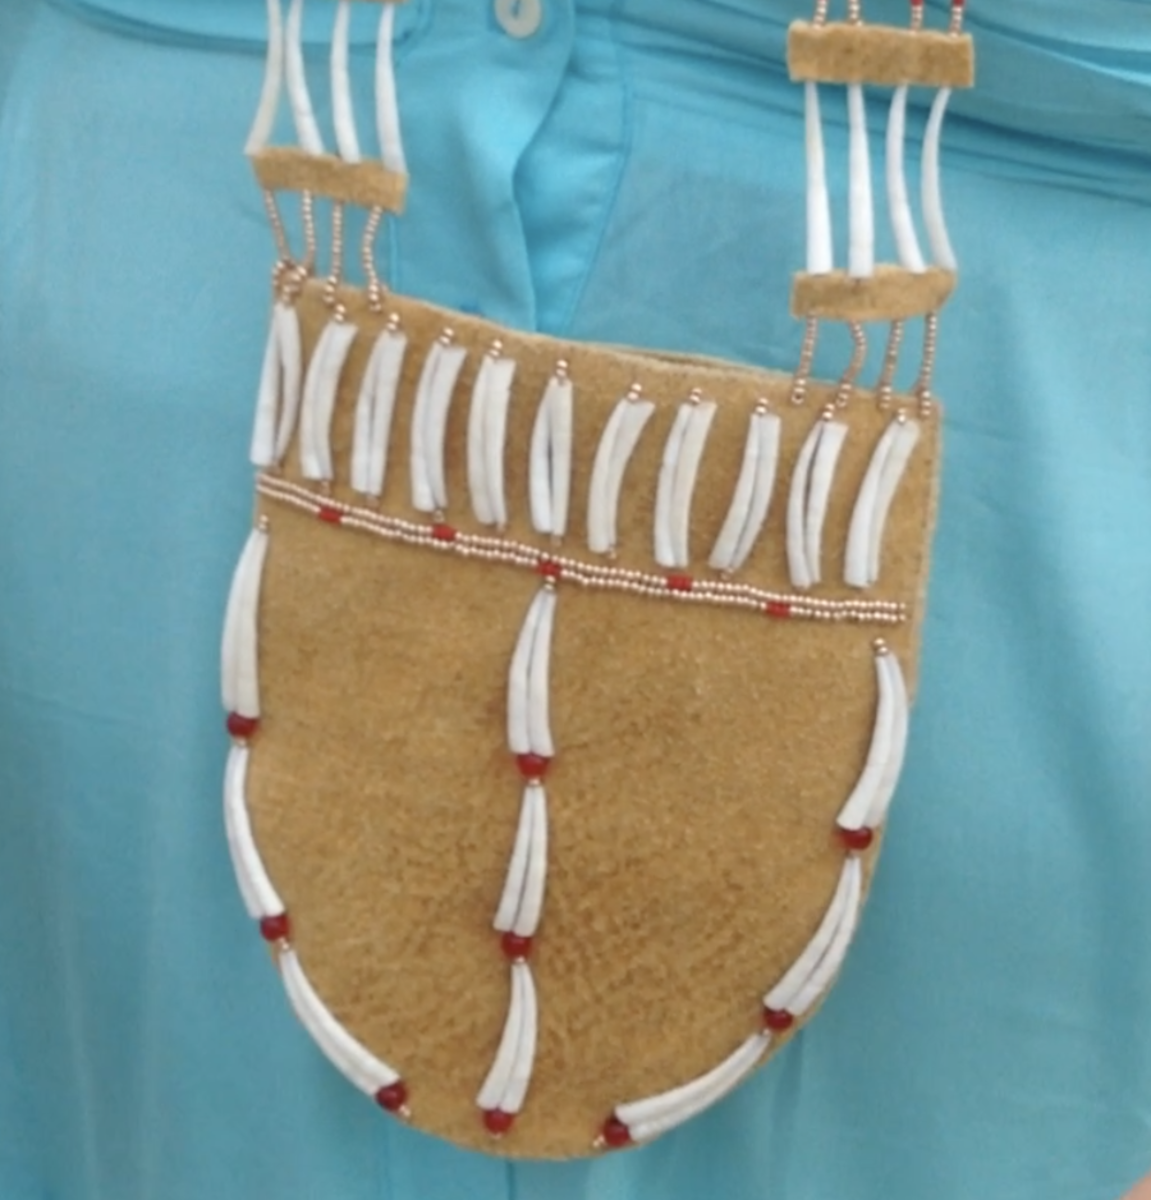 PLACE NAMES Shown here is a Dena'ina firebag necklace featuring dentalium shells. Historically the bag was used to carry tools and tinder for building fires. It's valued for its beauty and as a utilitarian object, according to the artist who made it, Melissa Shaginoff, Ahtna Athabascan and Paiute. She said it symbolizes the responsibility toward community, stewardship of the land, and leadership. Aug. 3, 2021, at Westchester Lagoon in Anchorage, Alaska. (Photo from video by Joaqlin Estus).